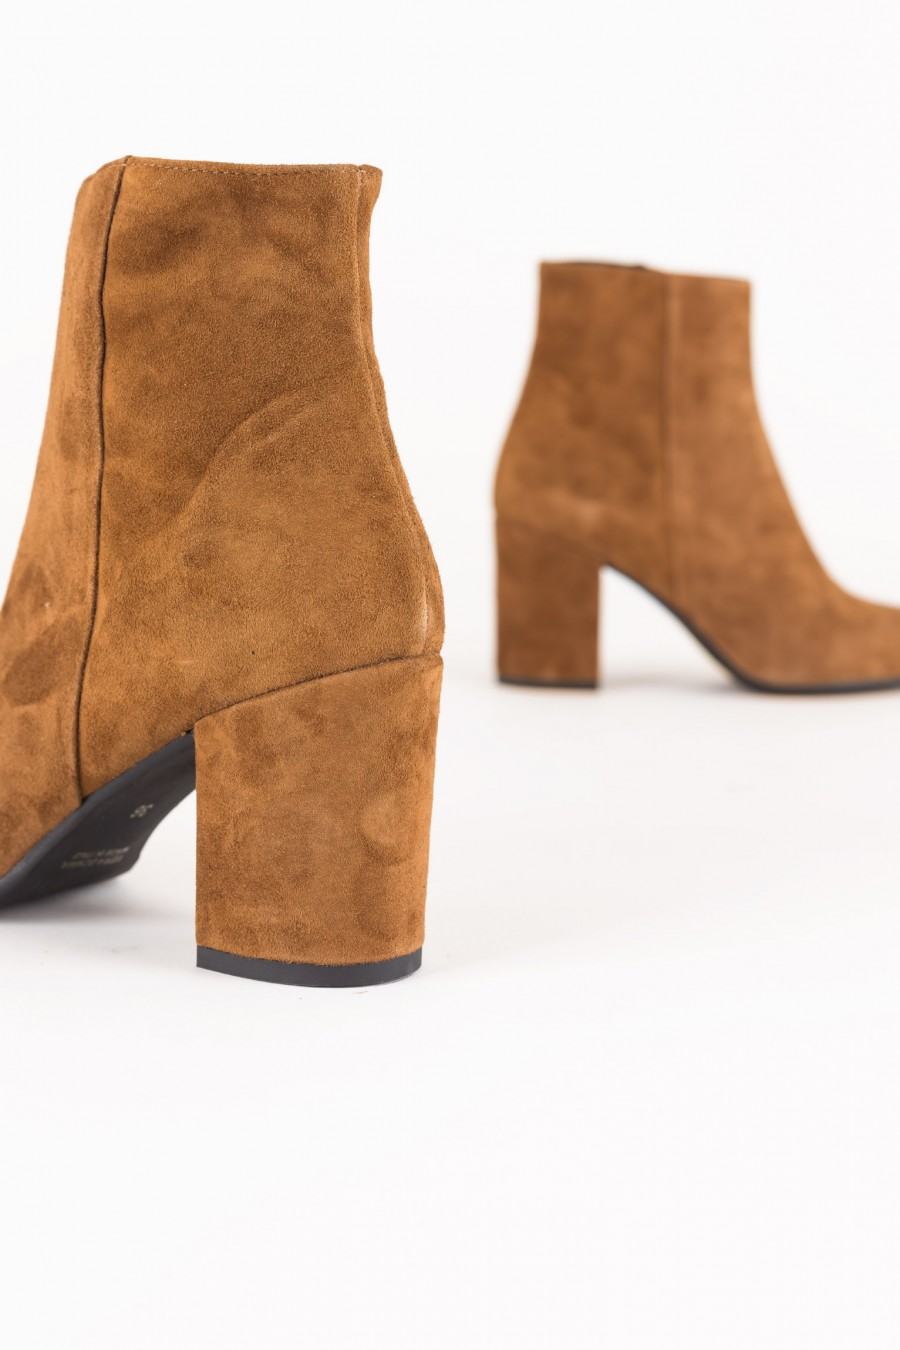 Boots with side zipper